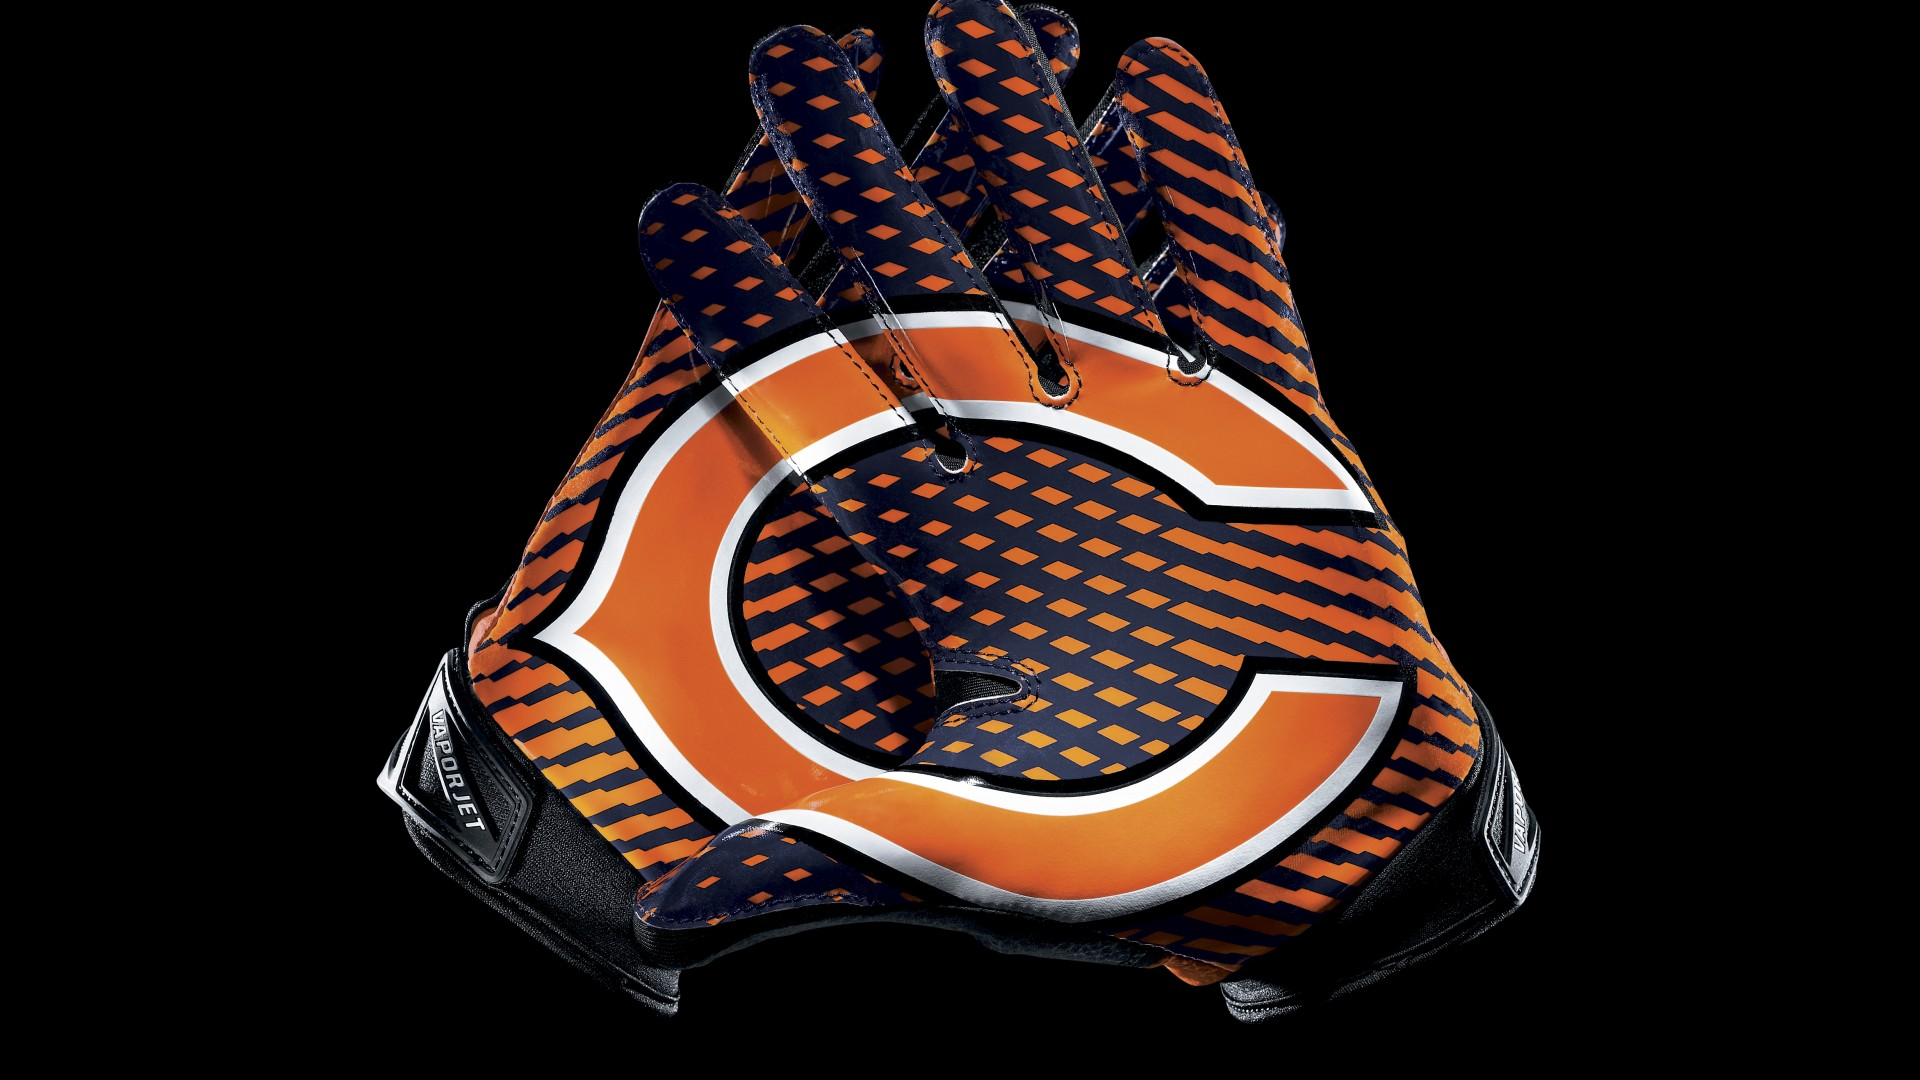 Chicago Bears Gloves Wallpaper 52902